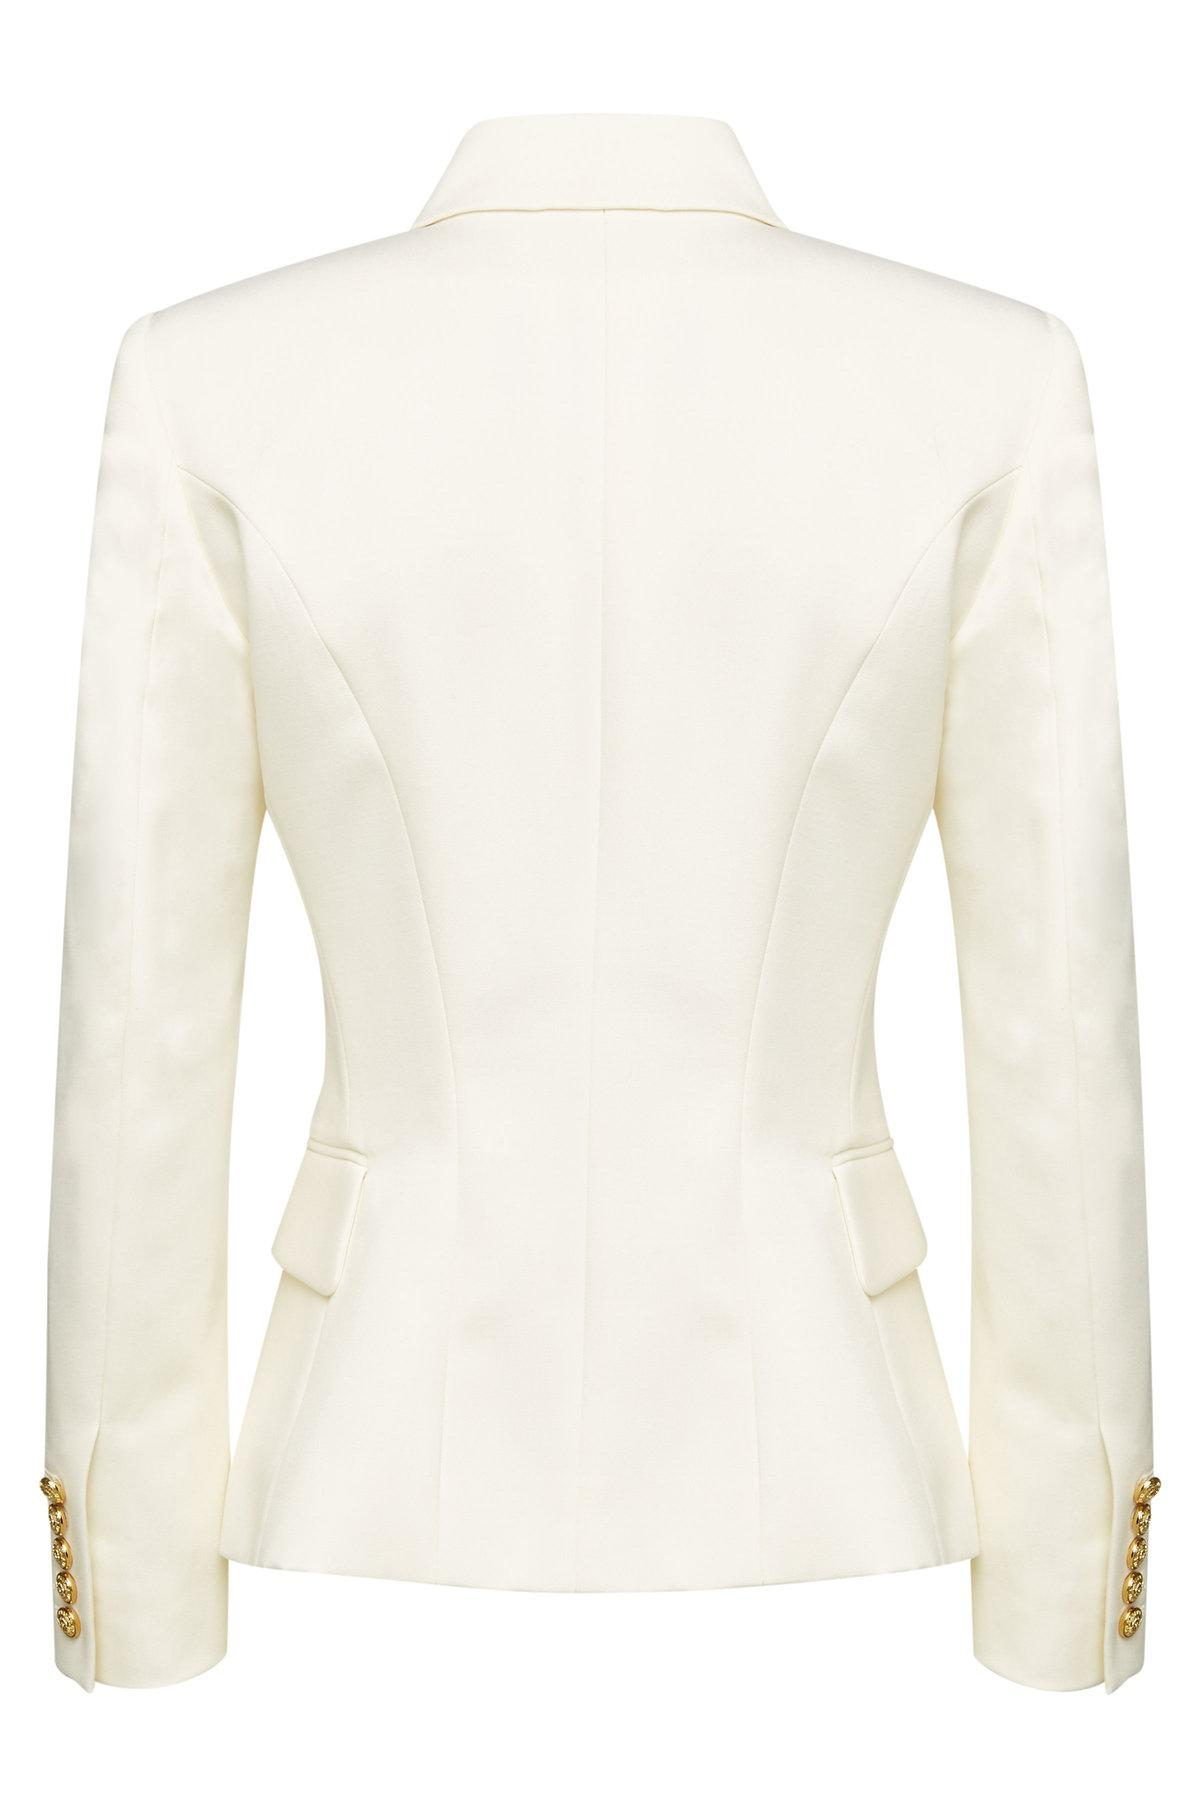 ba417a8bc Balmain Wool Blazer With Embossed Buttons in White - Lyst